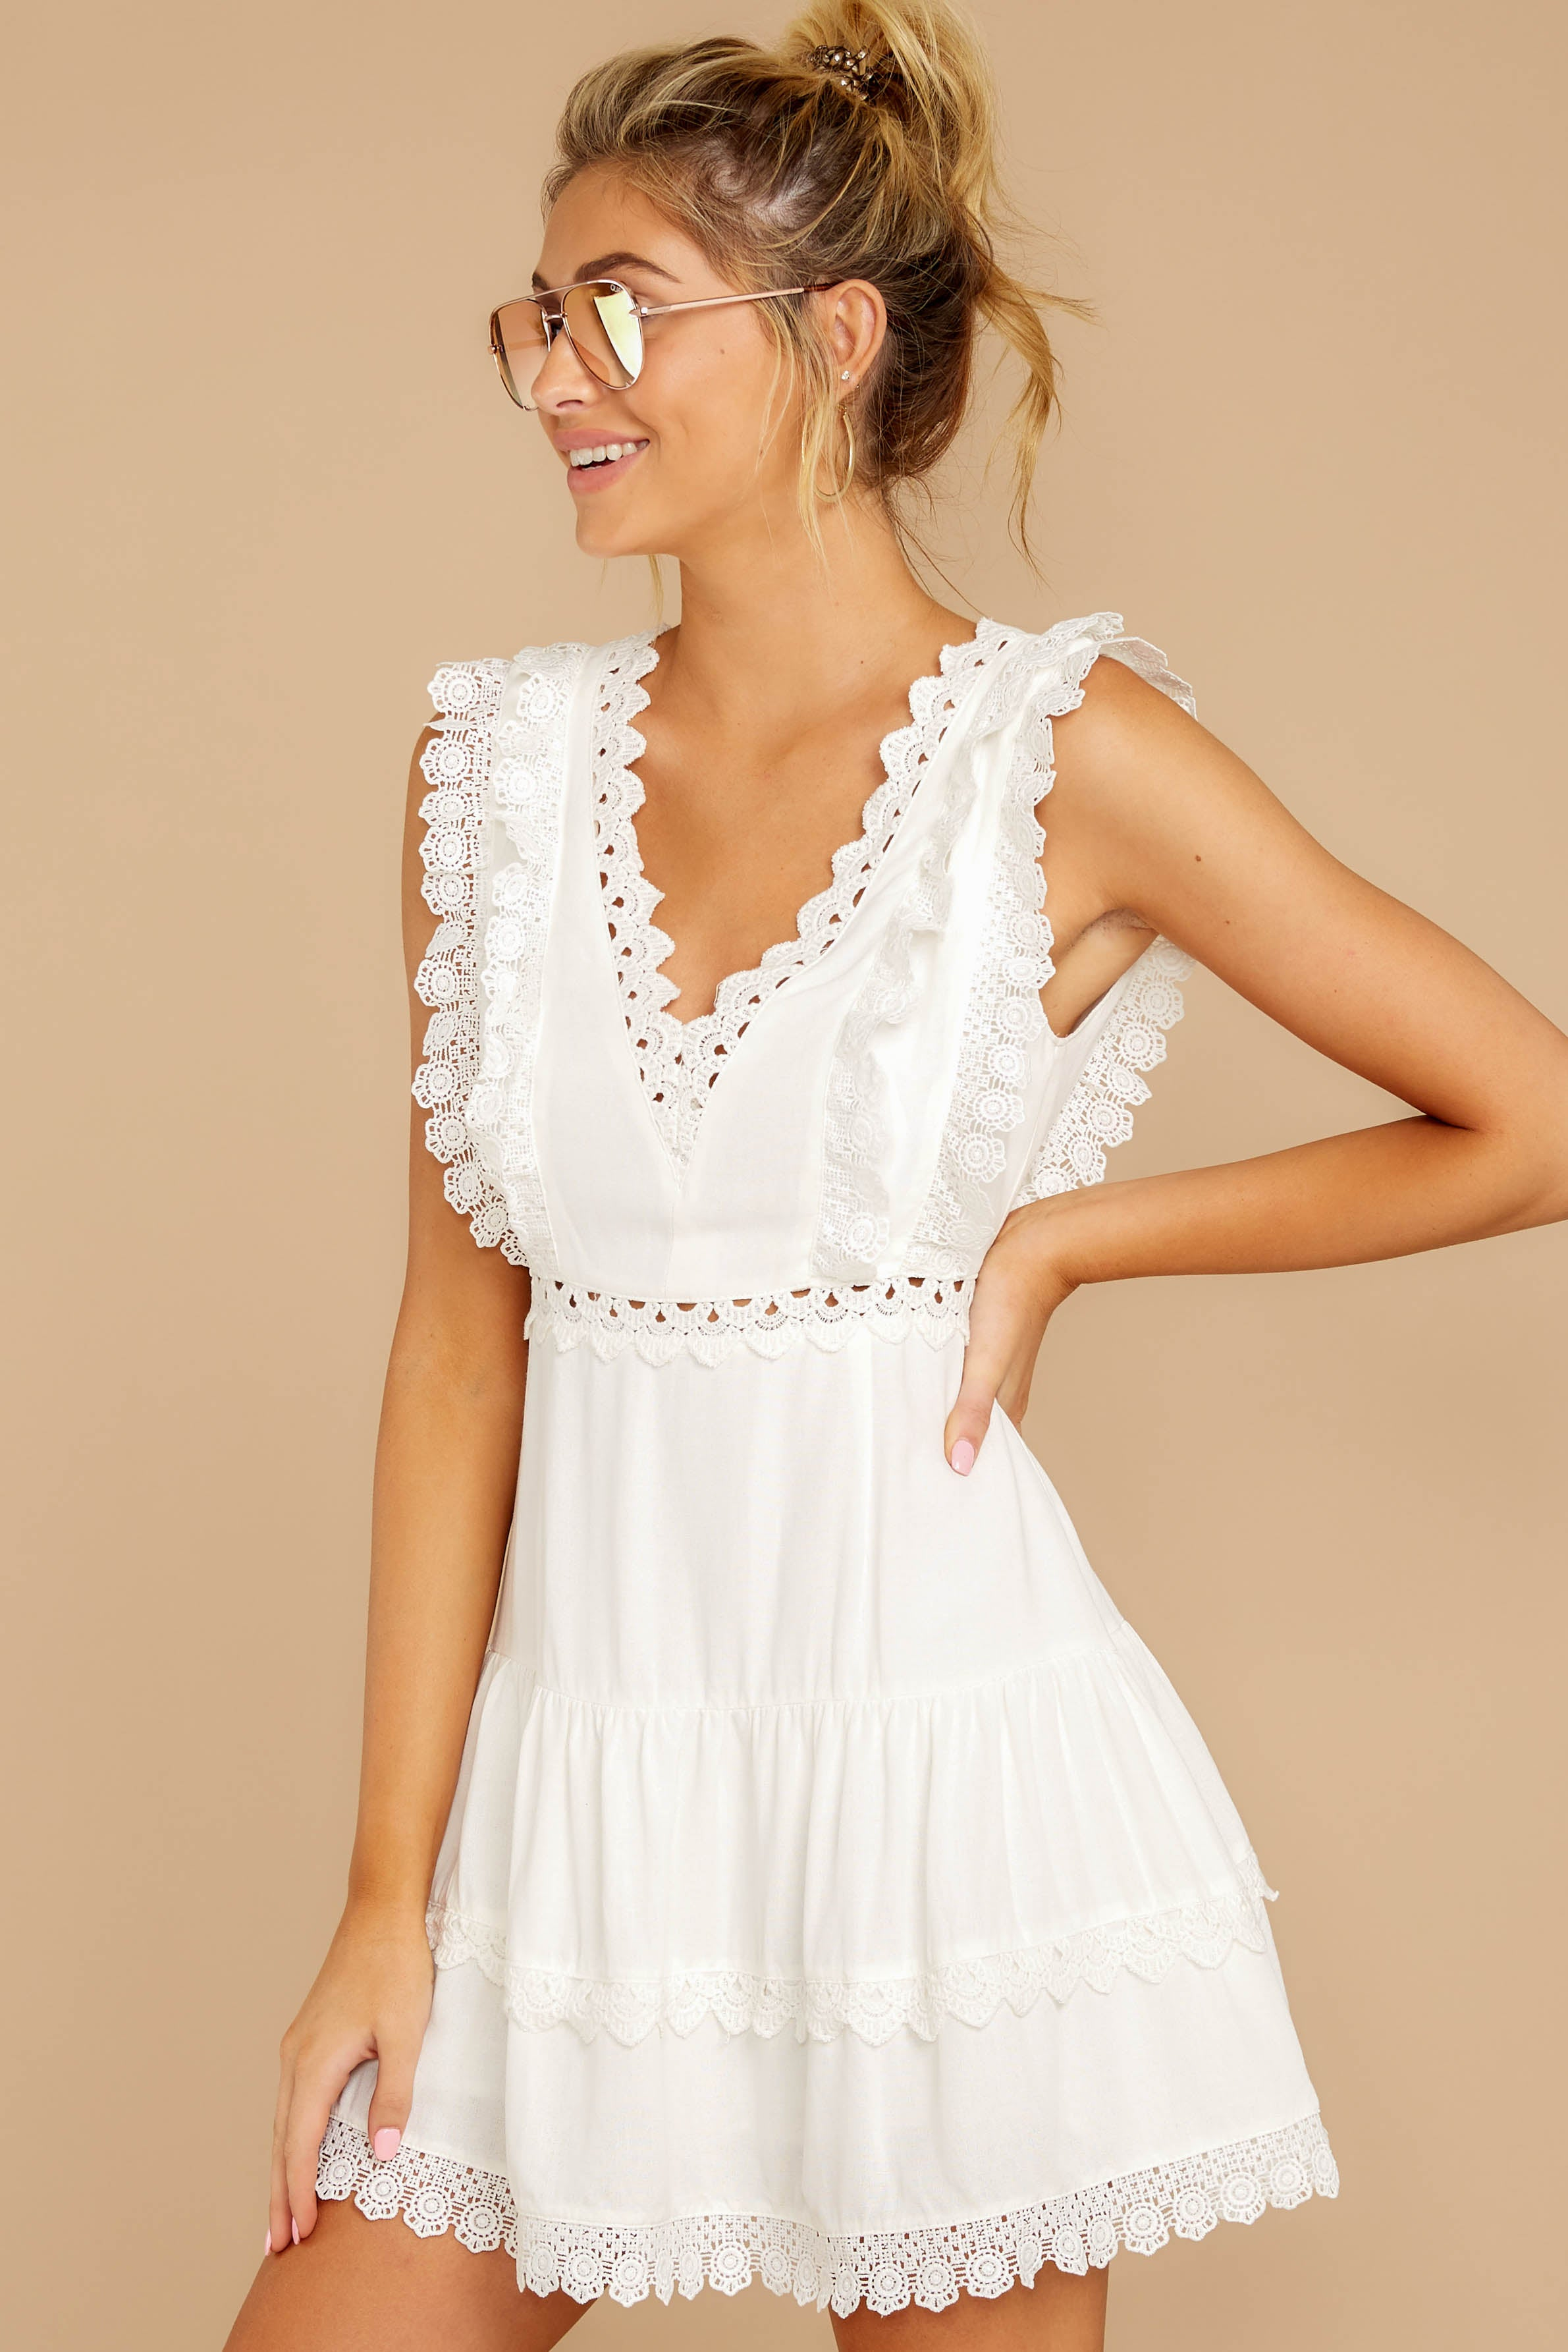 6 Looking For More White Dress at reddress.com